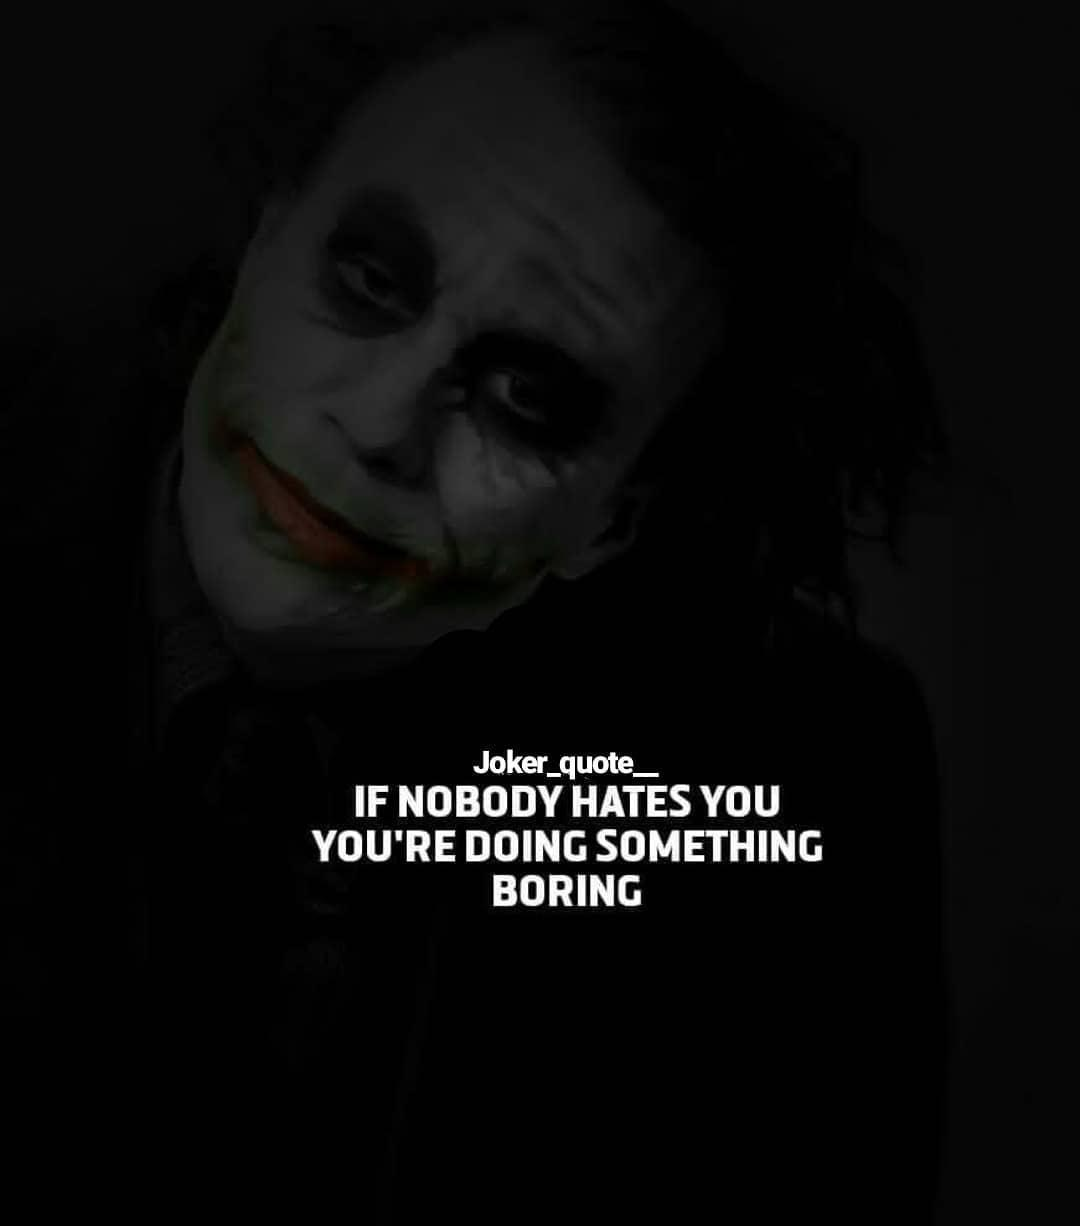 Joker Inspirational Quotes for Android   APK Download 1080x1226